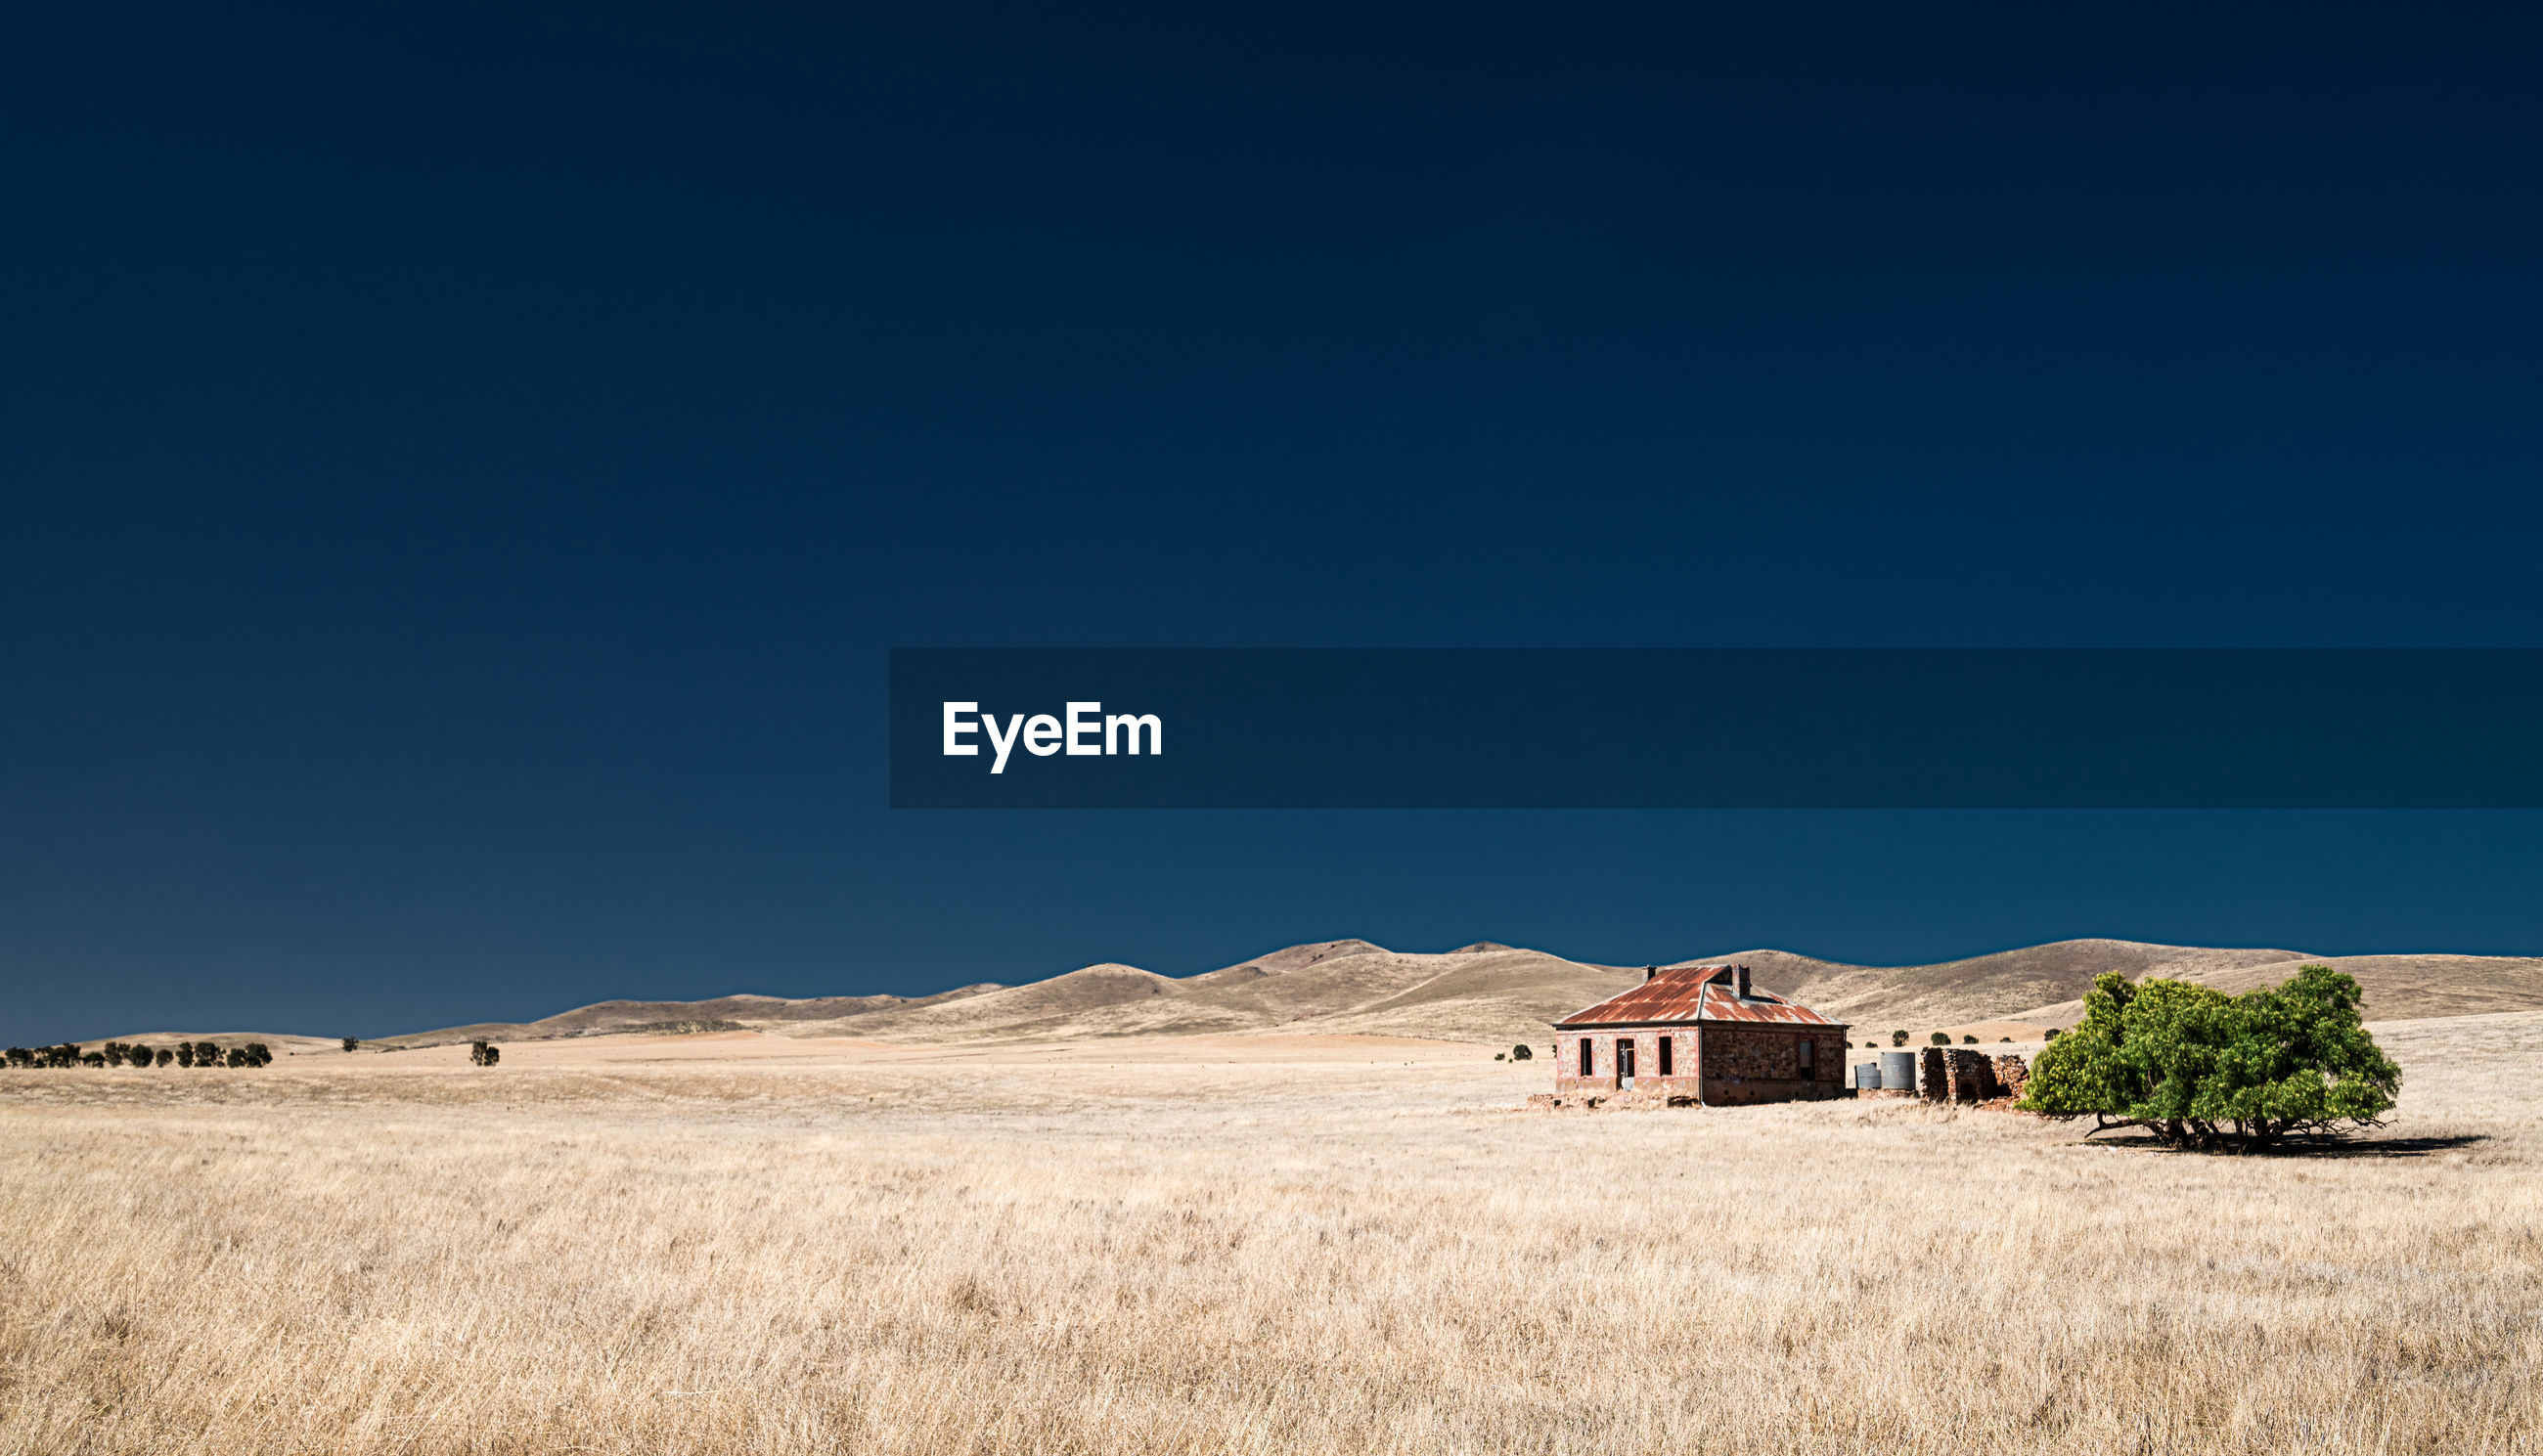 HOUSE ON FIELD AGAINST BLUE SKY